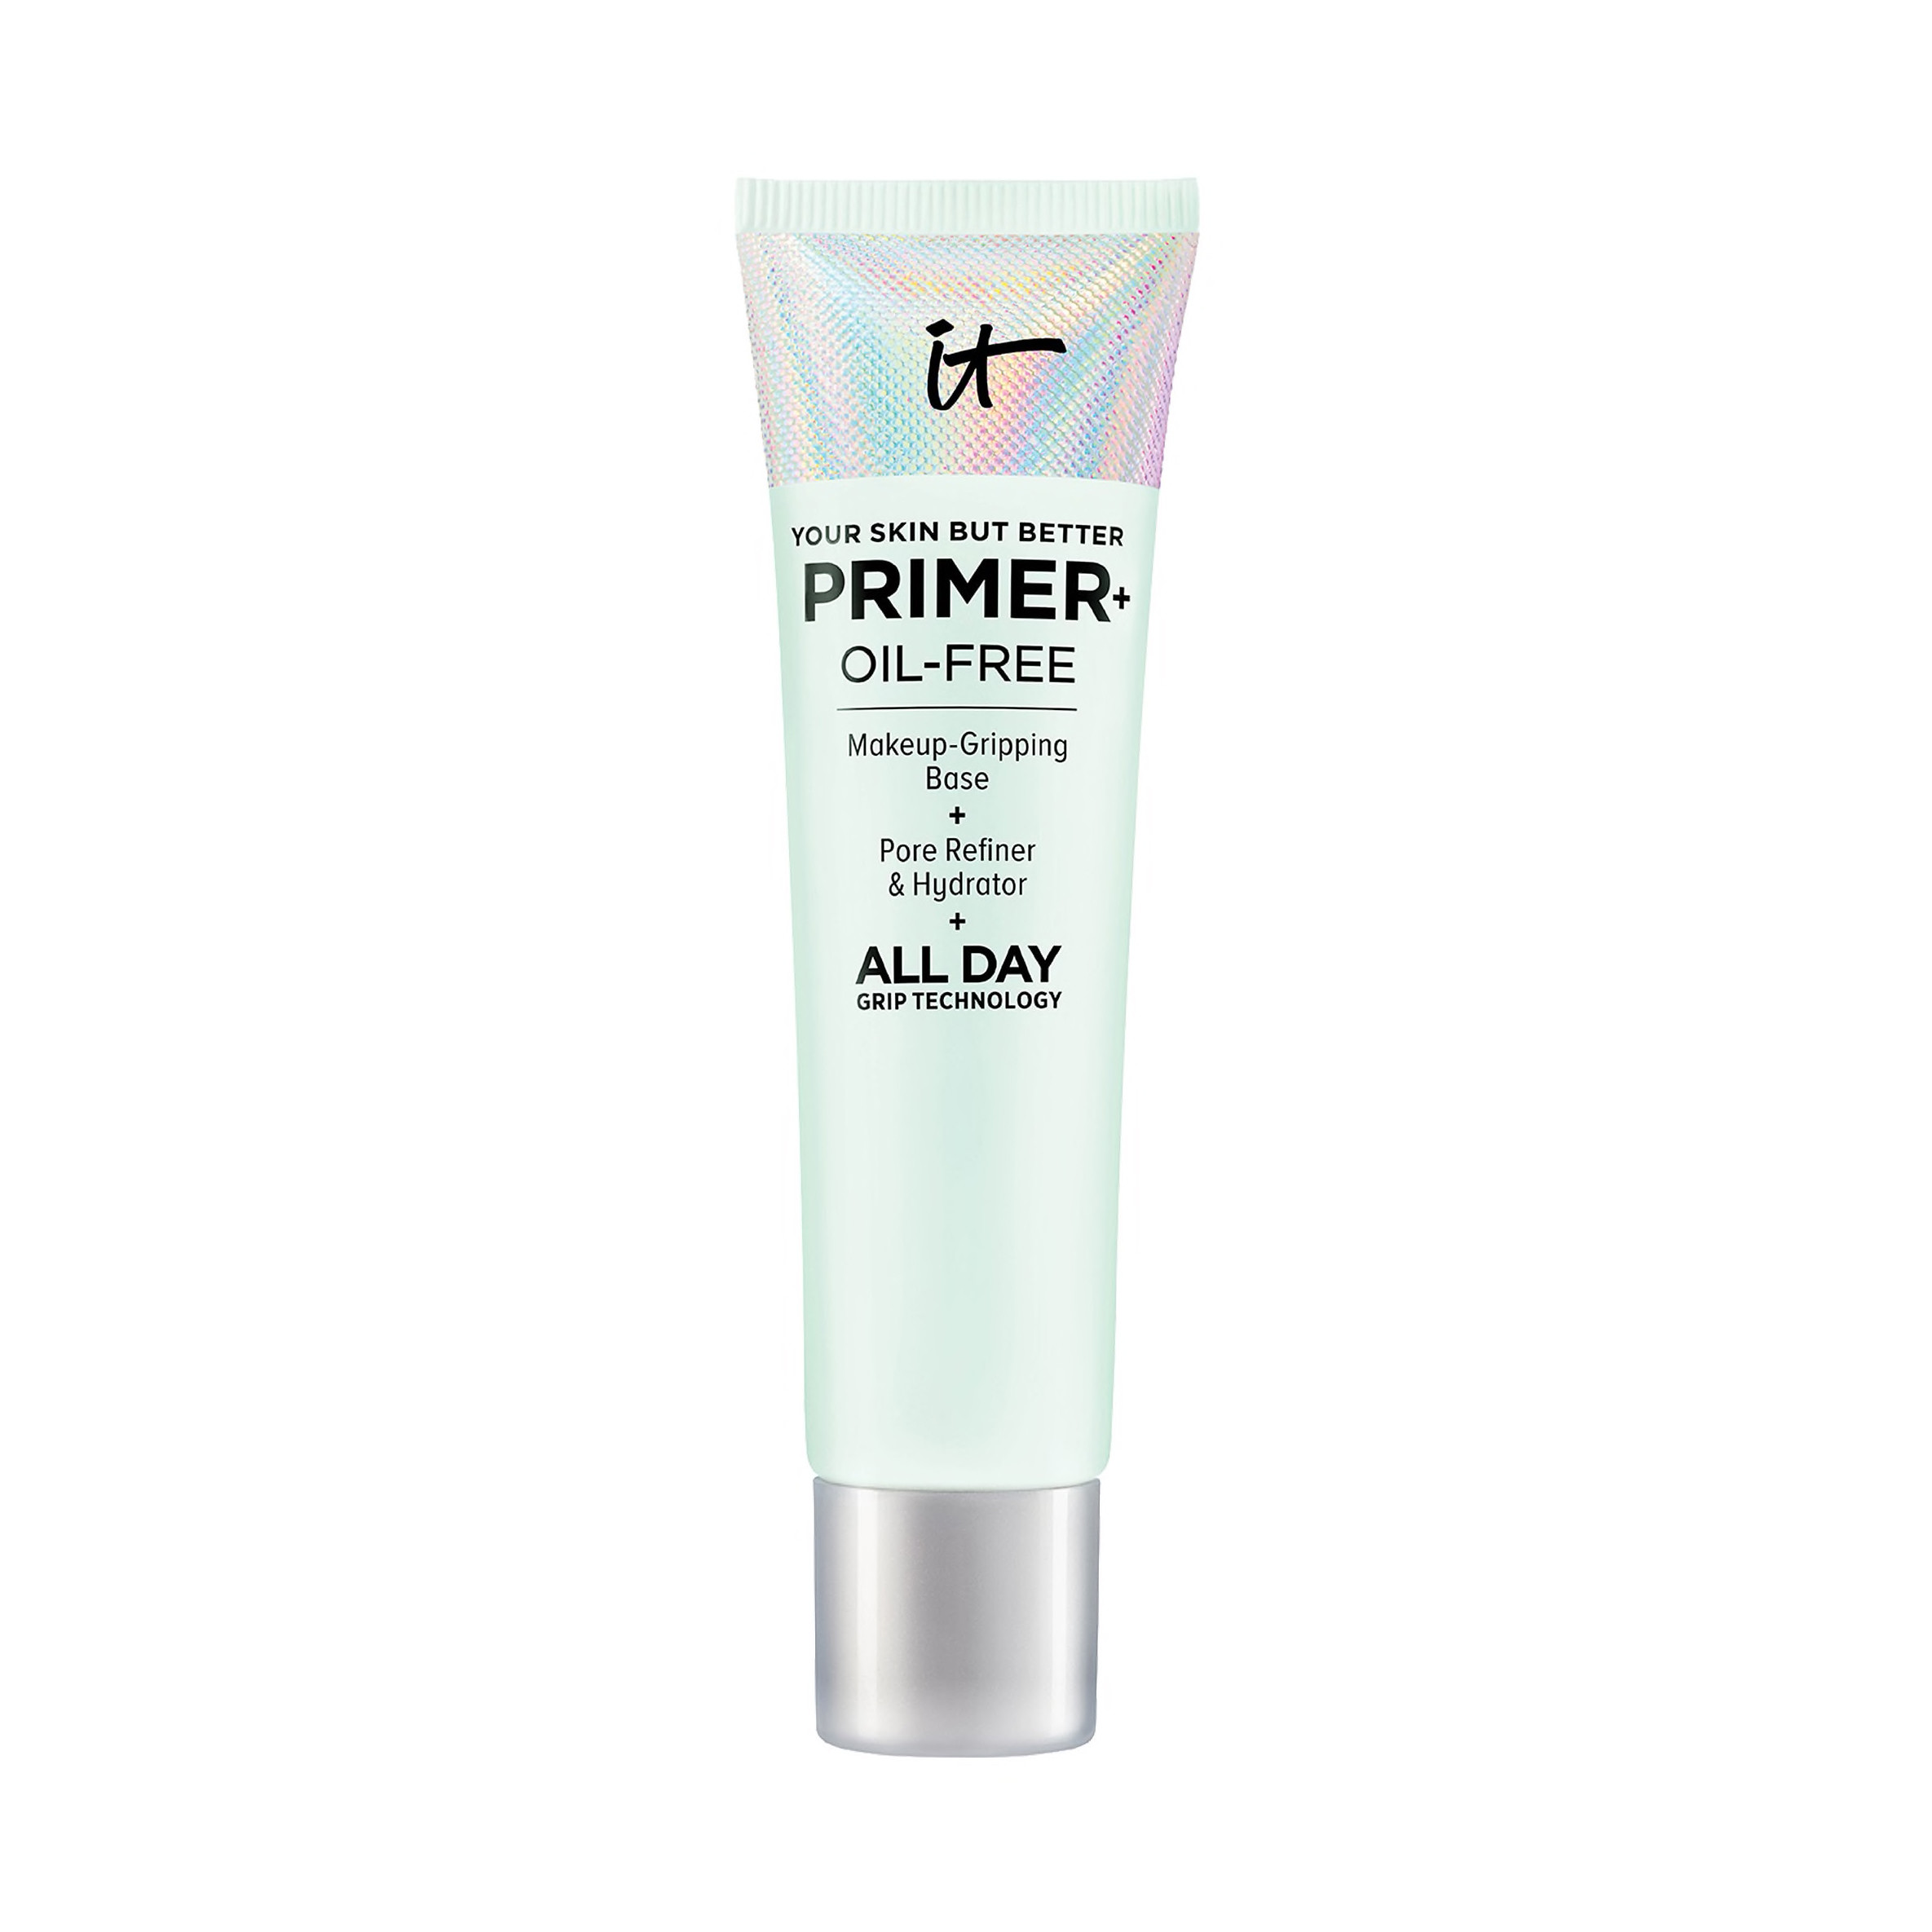 The Best Makeup Primers on the Market, According to Your Skin Type